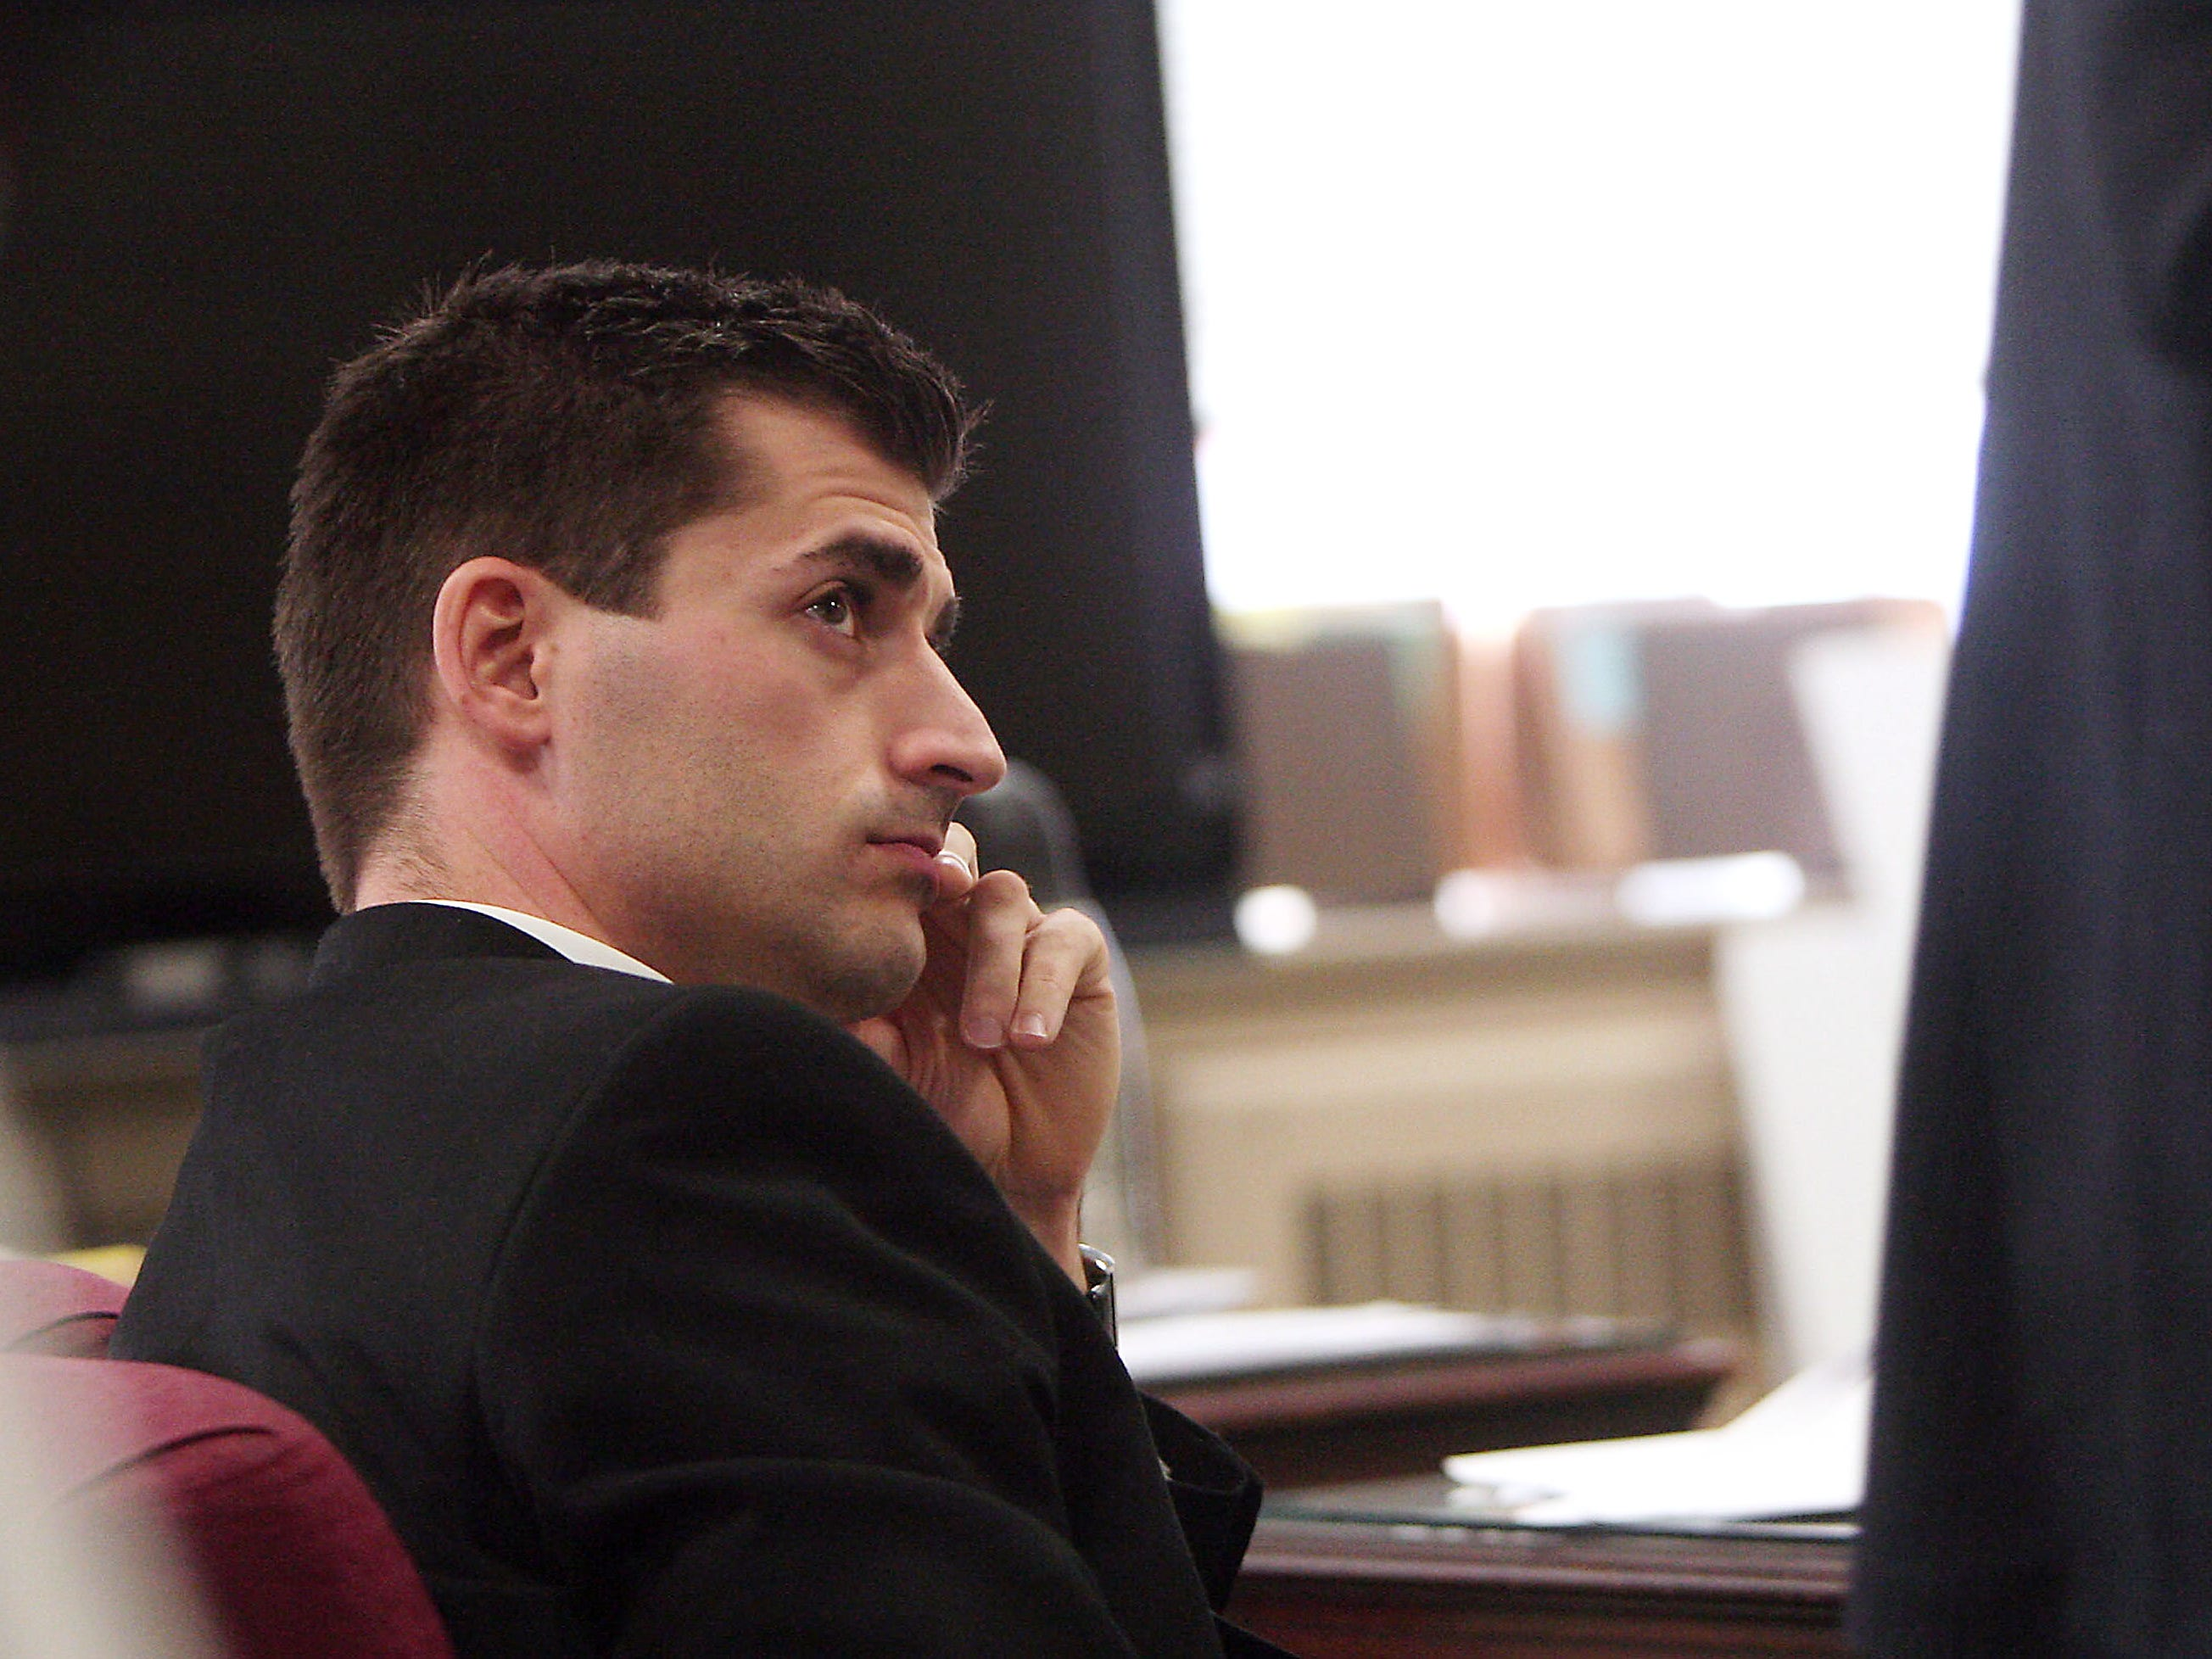 Morristown, N.J.- January 29, 2013---Assistant Morris County Prosecutor Matthew Troiano listens to the defenses closing summations in the murder trial of Amalia Mirasola charged with the shooting death of her husband in their Butler home in 2010. Mirasola, 47, is seriously debilitated today by multiple sclerosis, which was less severe at the time of the shooting. 